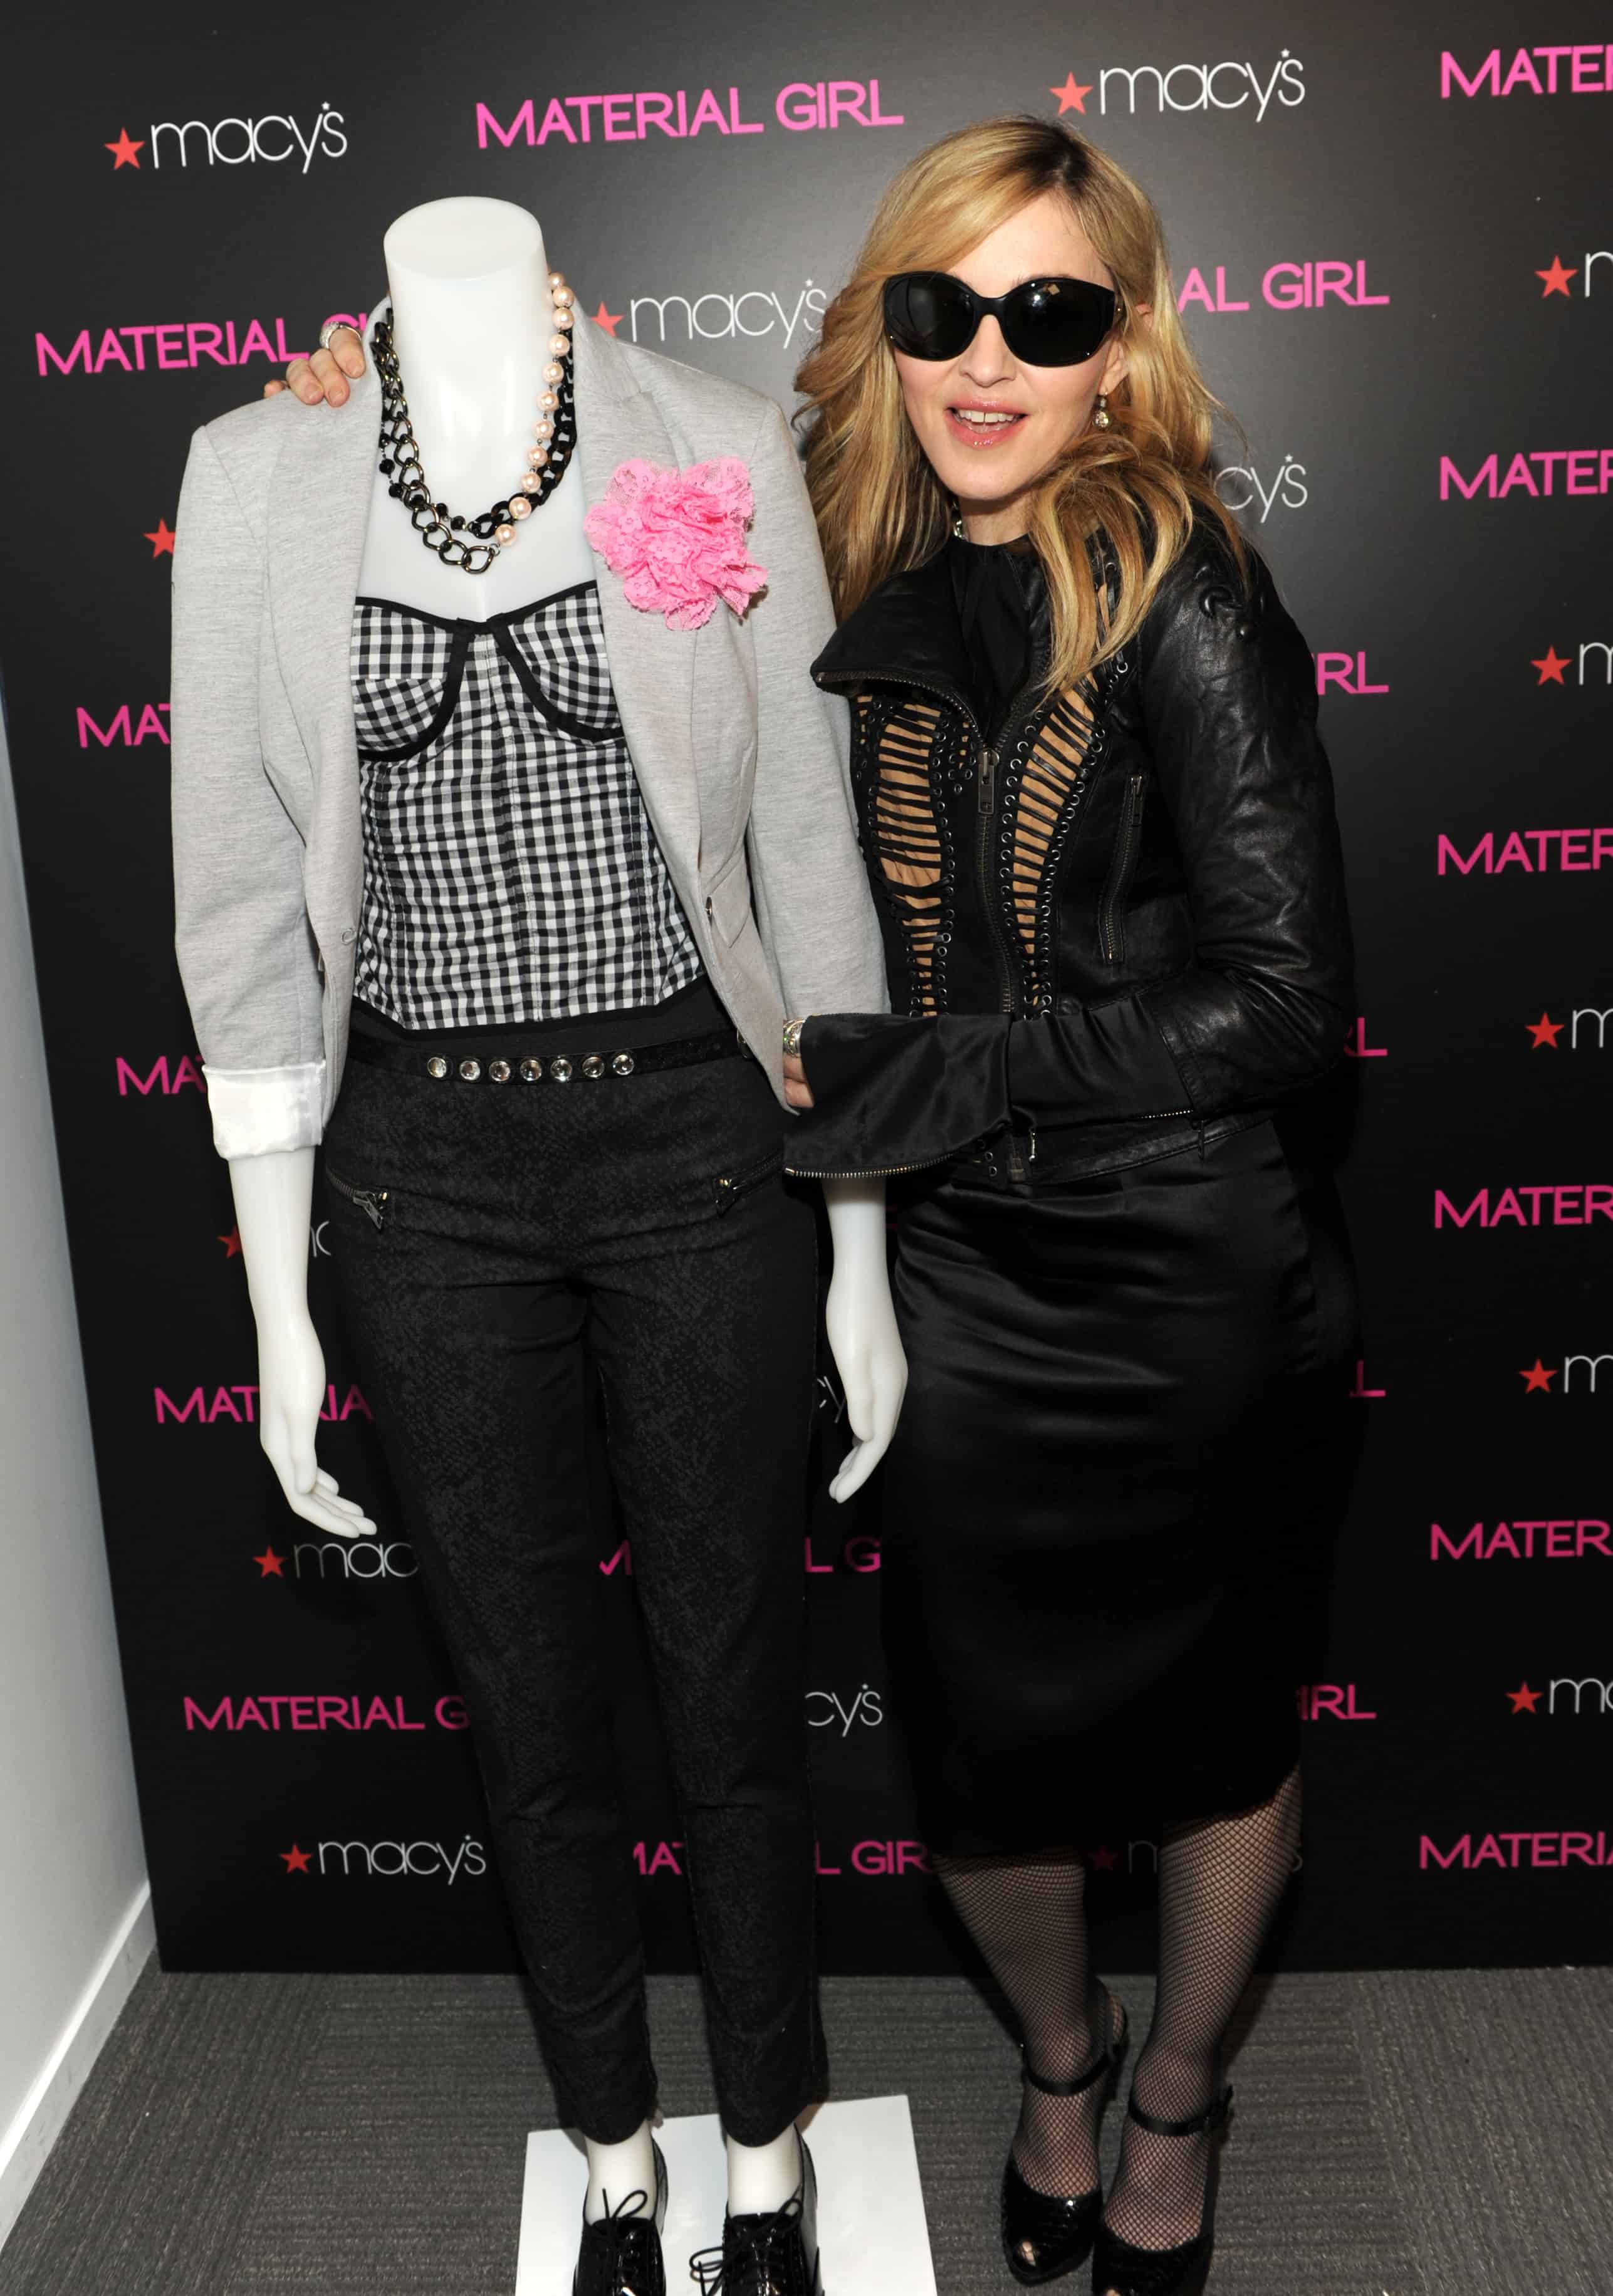 Sneak Peek Check Out Lourdes And Madonna's Sketches For MaterialGirl' advise